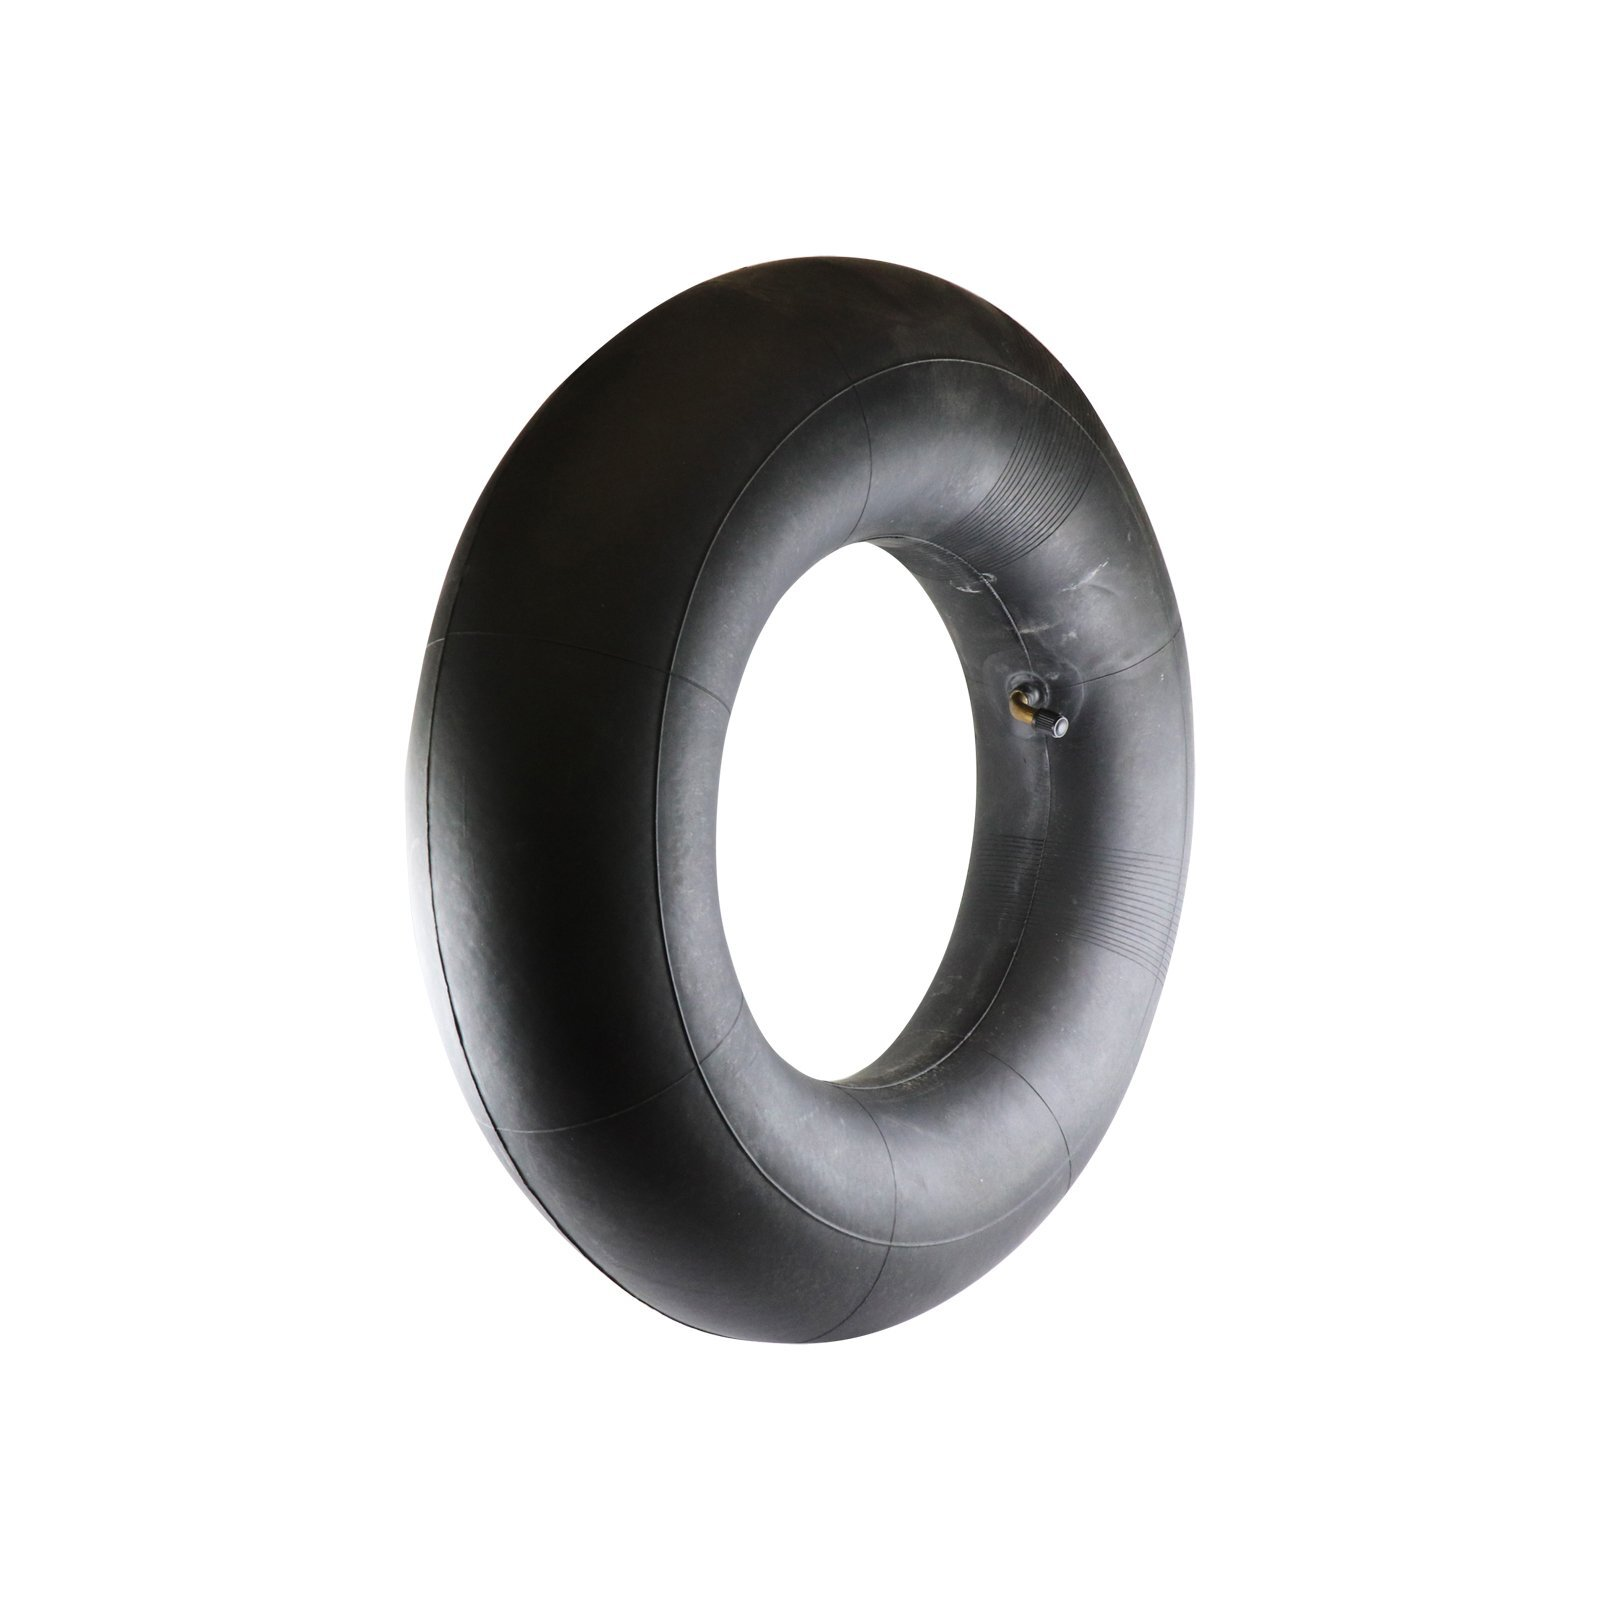 Move It 400 x 8 Replacement Inner Tube